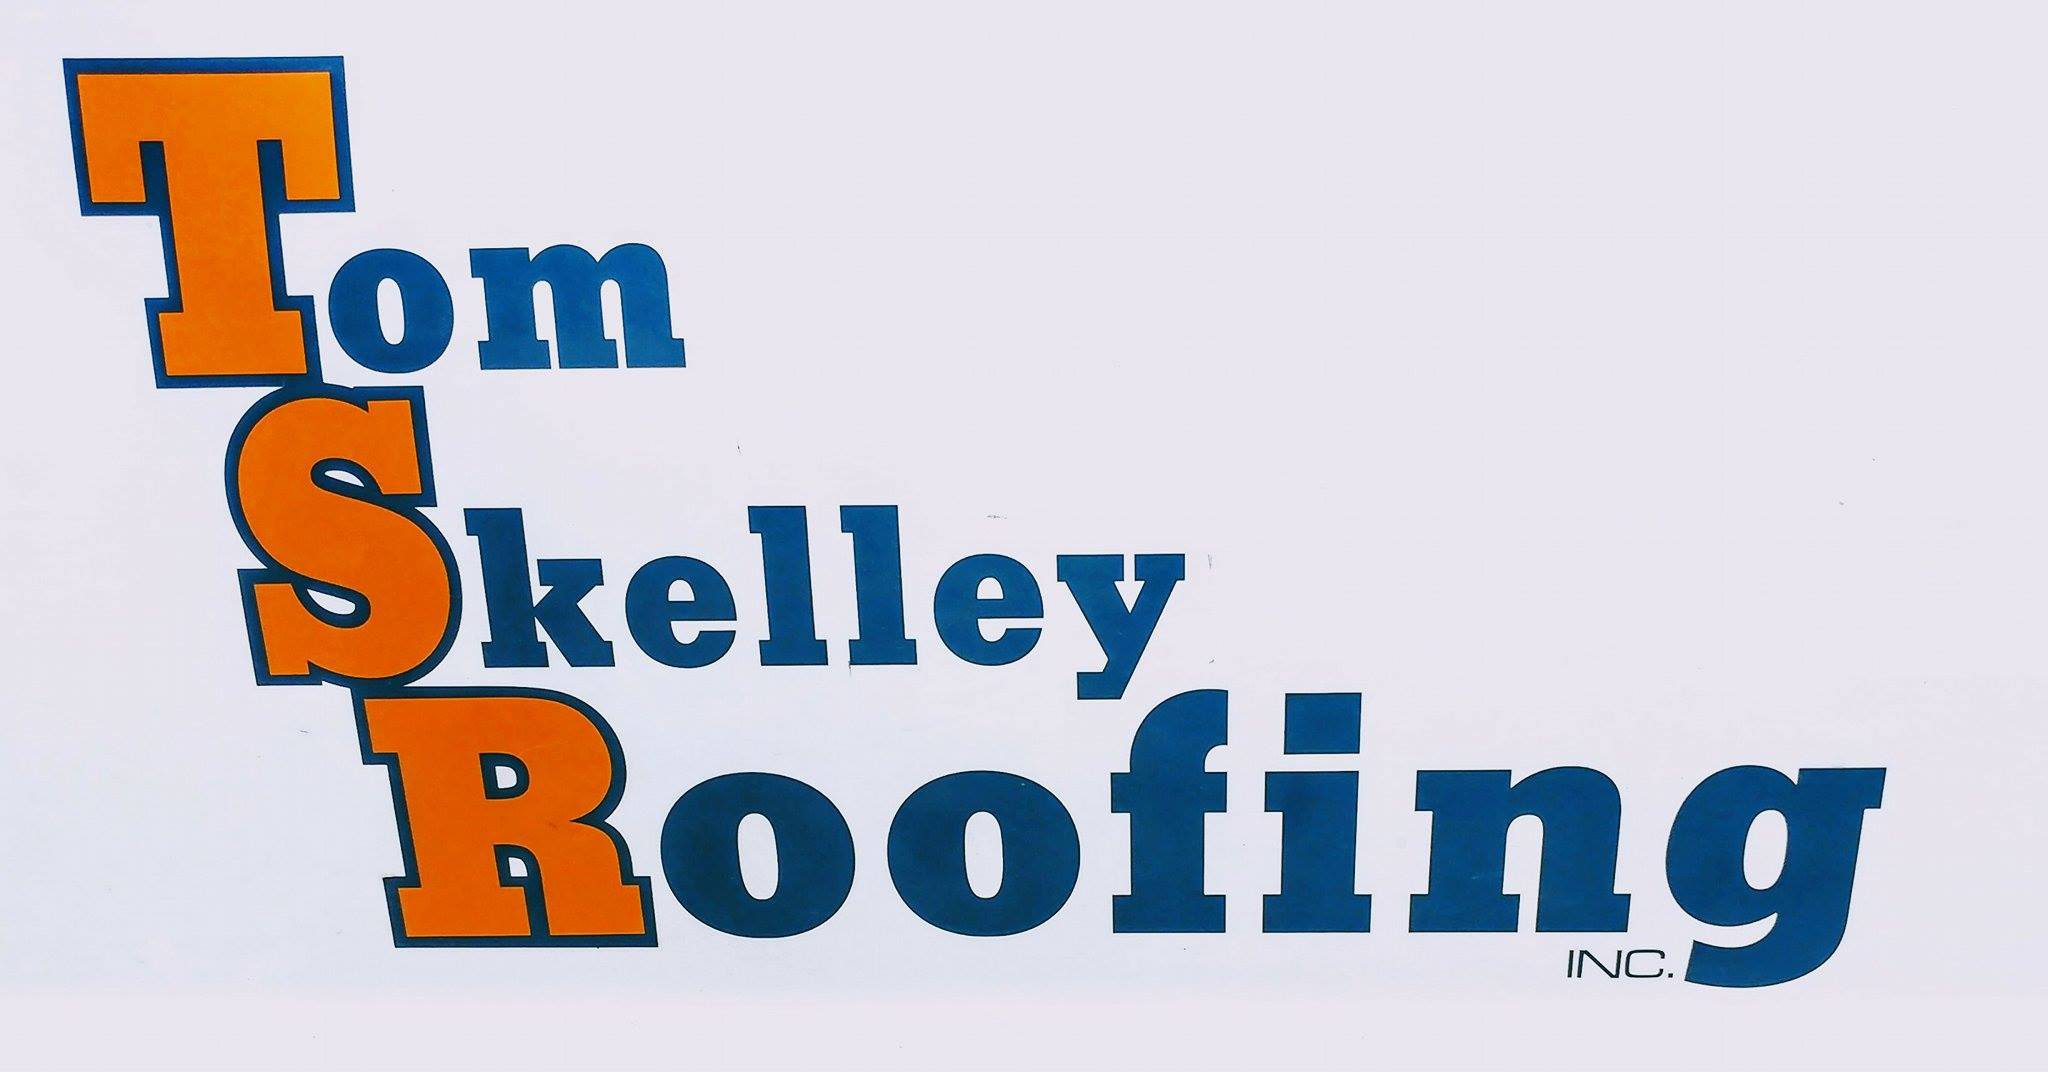 Tom Skelley Roofing, Inc